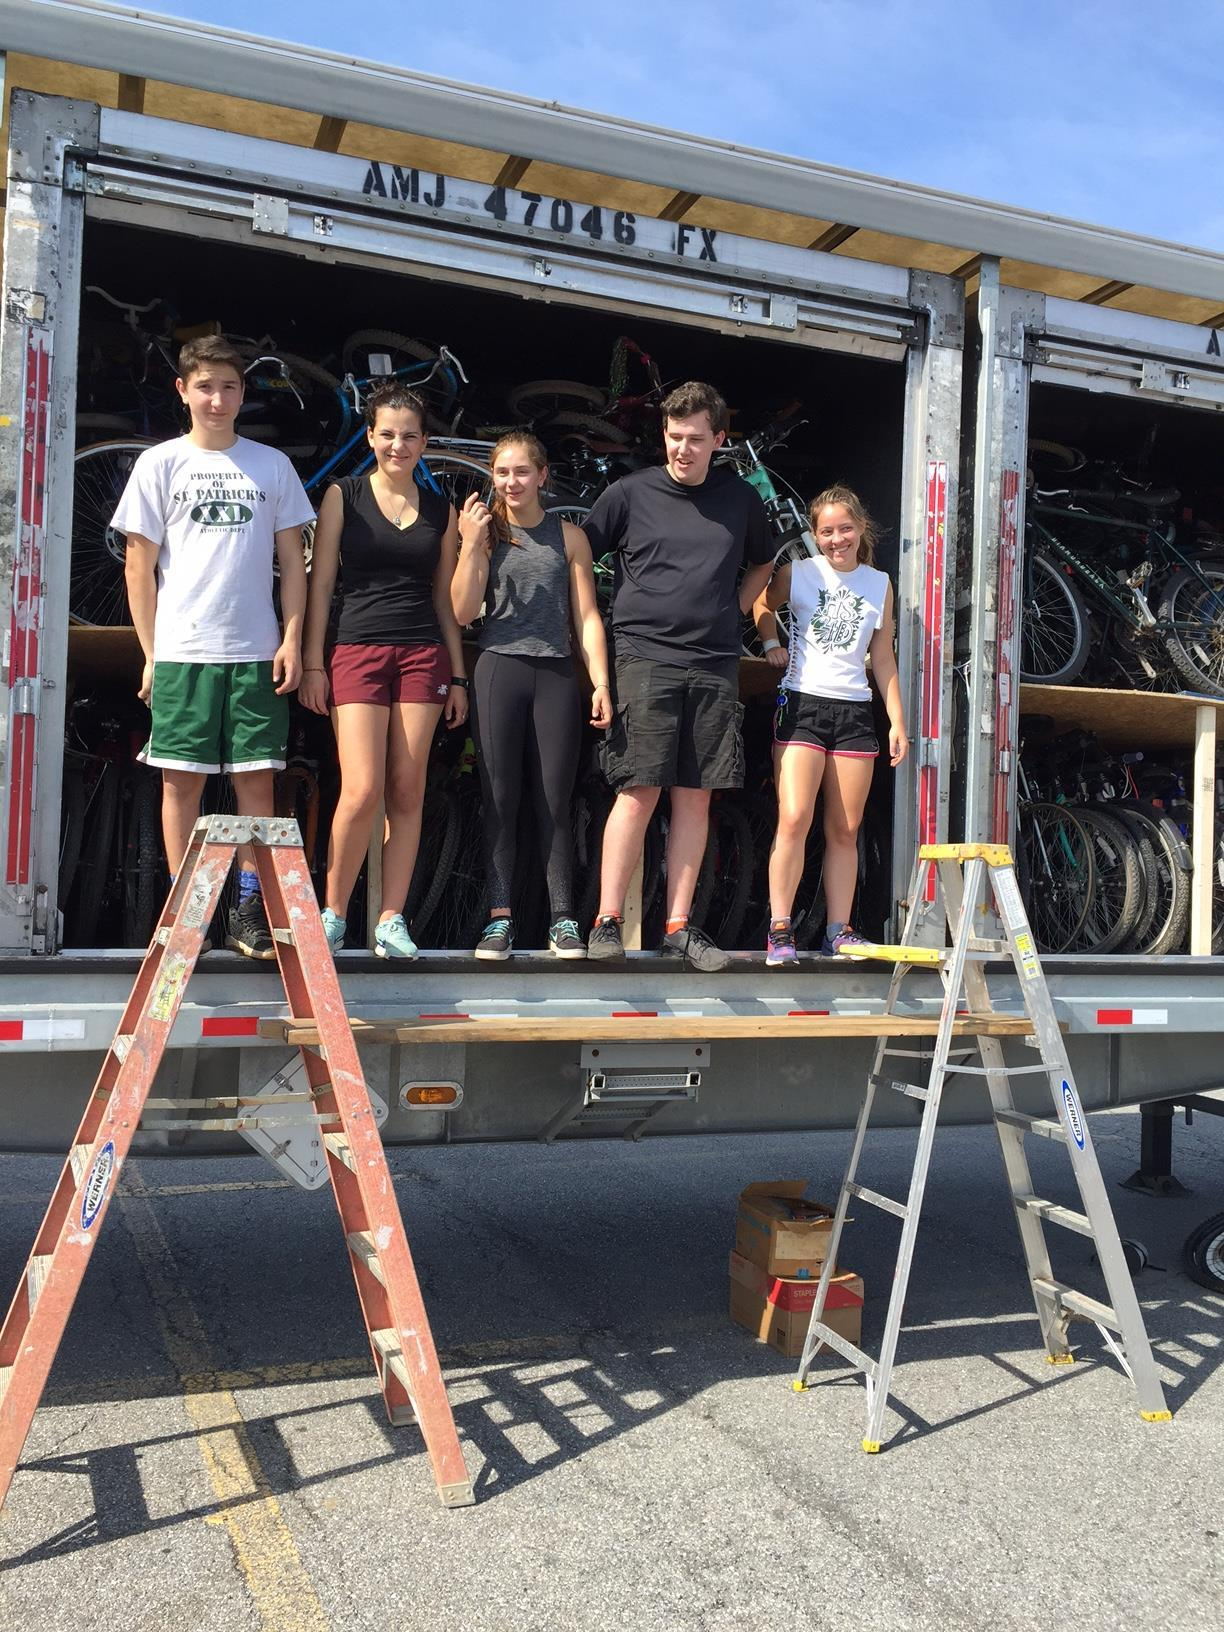 In late September, five Rice students volunteered with Pedals for Progress to help load 253 bikes and 168 sewing machines into 5 donated FedEx containers to send to Albania, Nicaragua, Cameroon and Gambia.